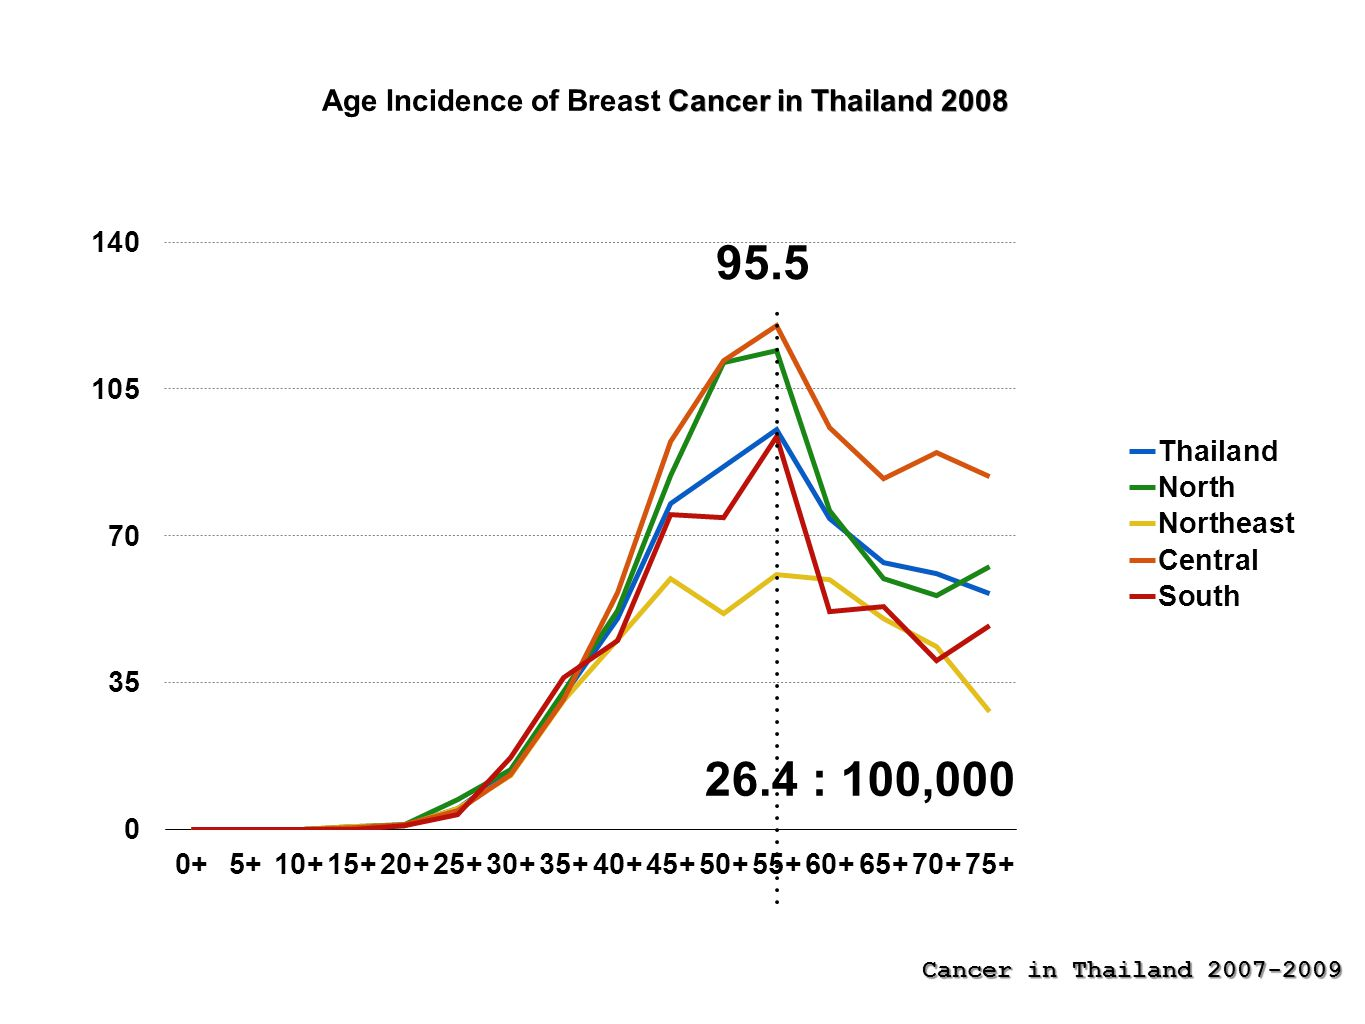 Age Incidence of Breast Cancer in Thailand 2008